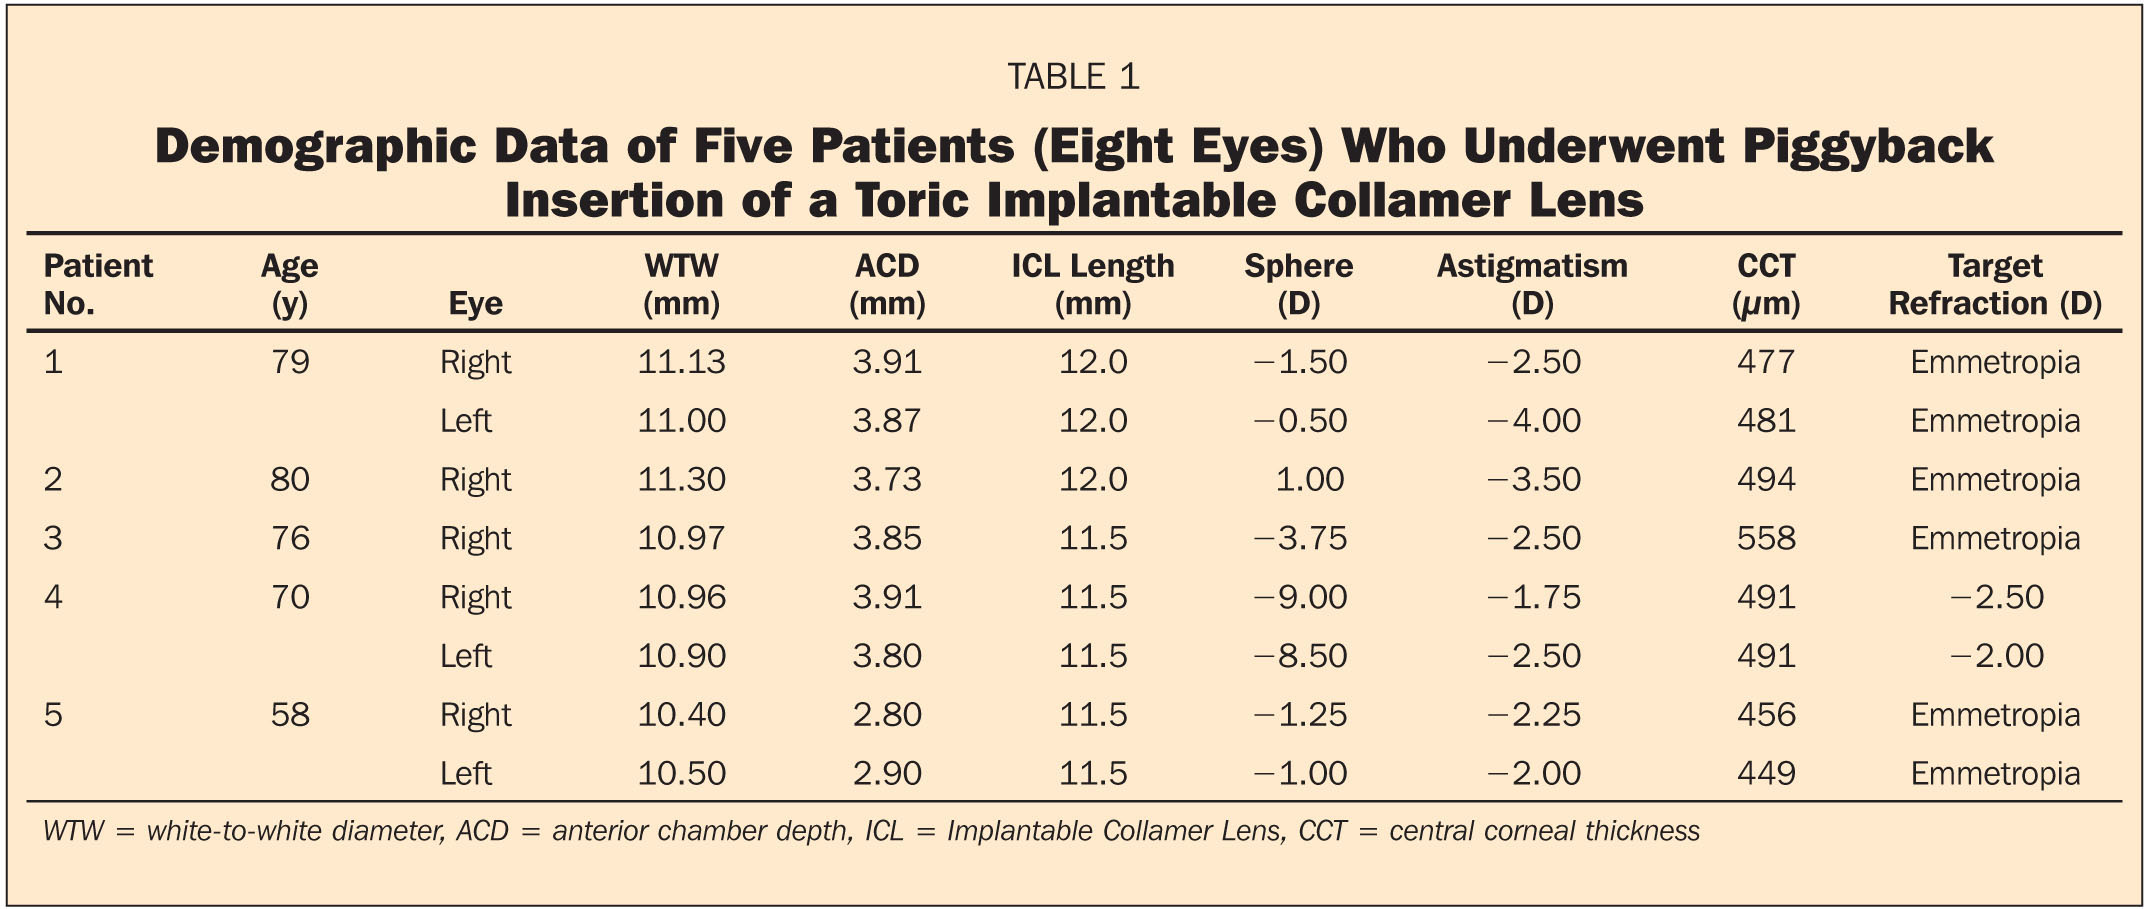 Demographic Data of Five Patients (Eight Eyes) Who Underwent Piggyback Insertion of a Toric Implantable Collamer Lens